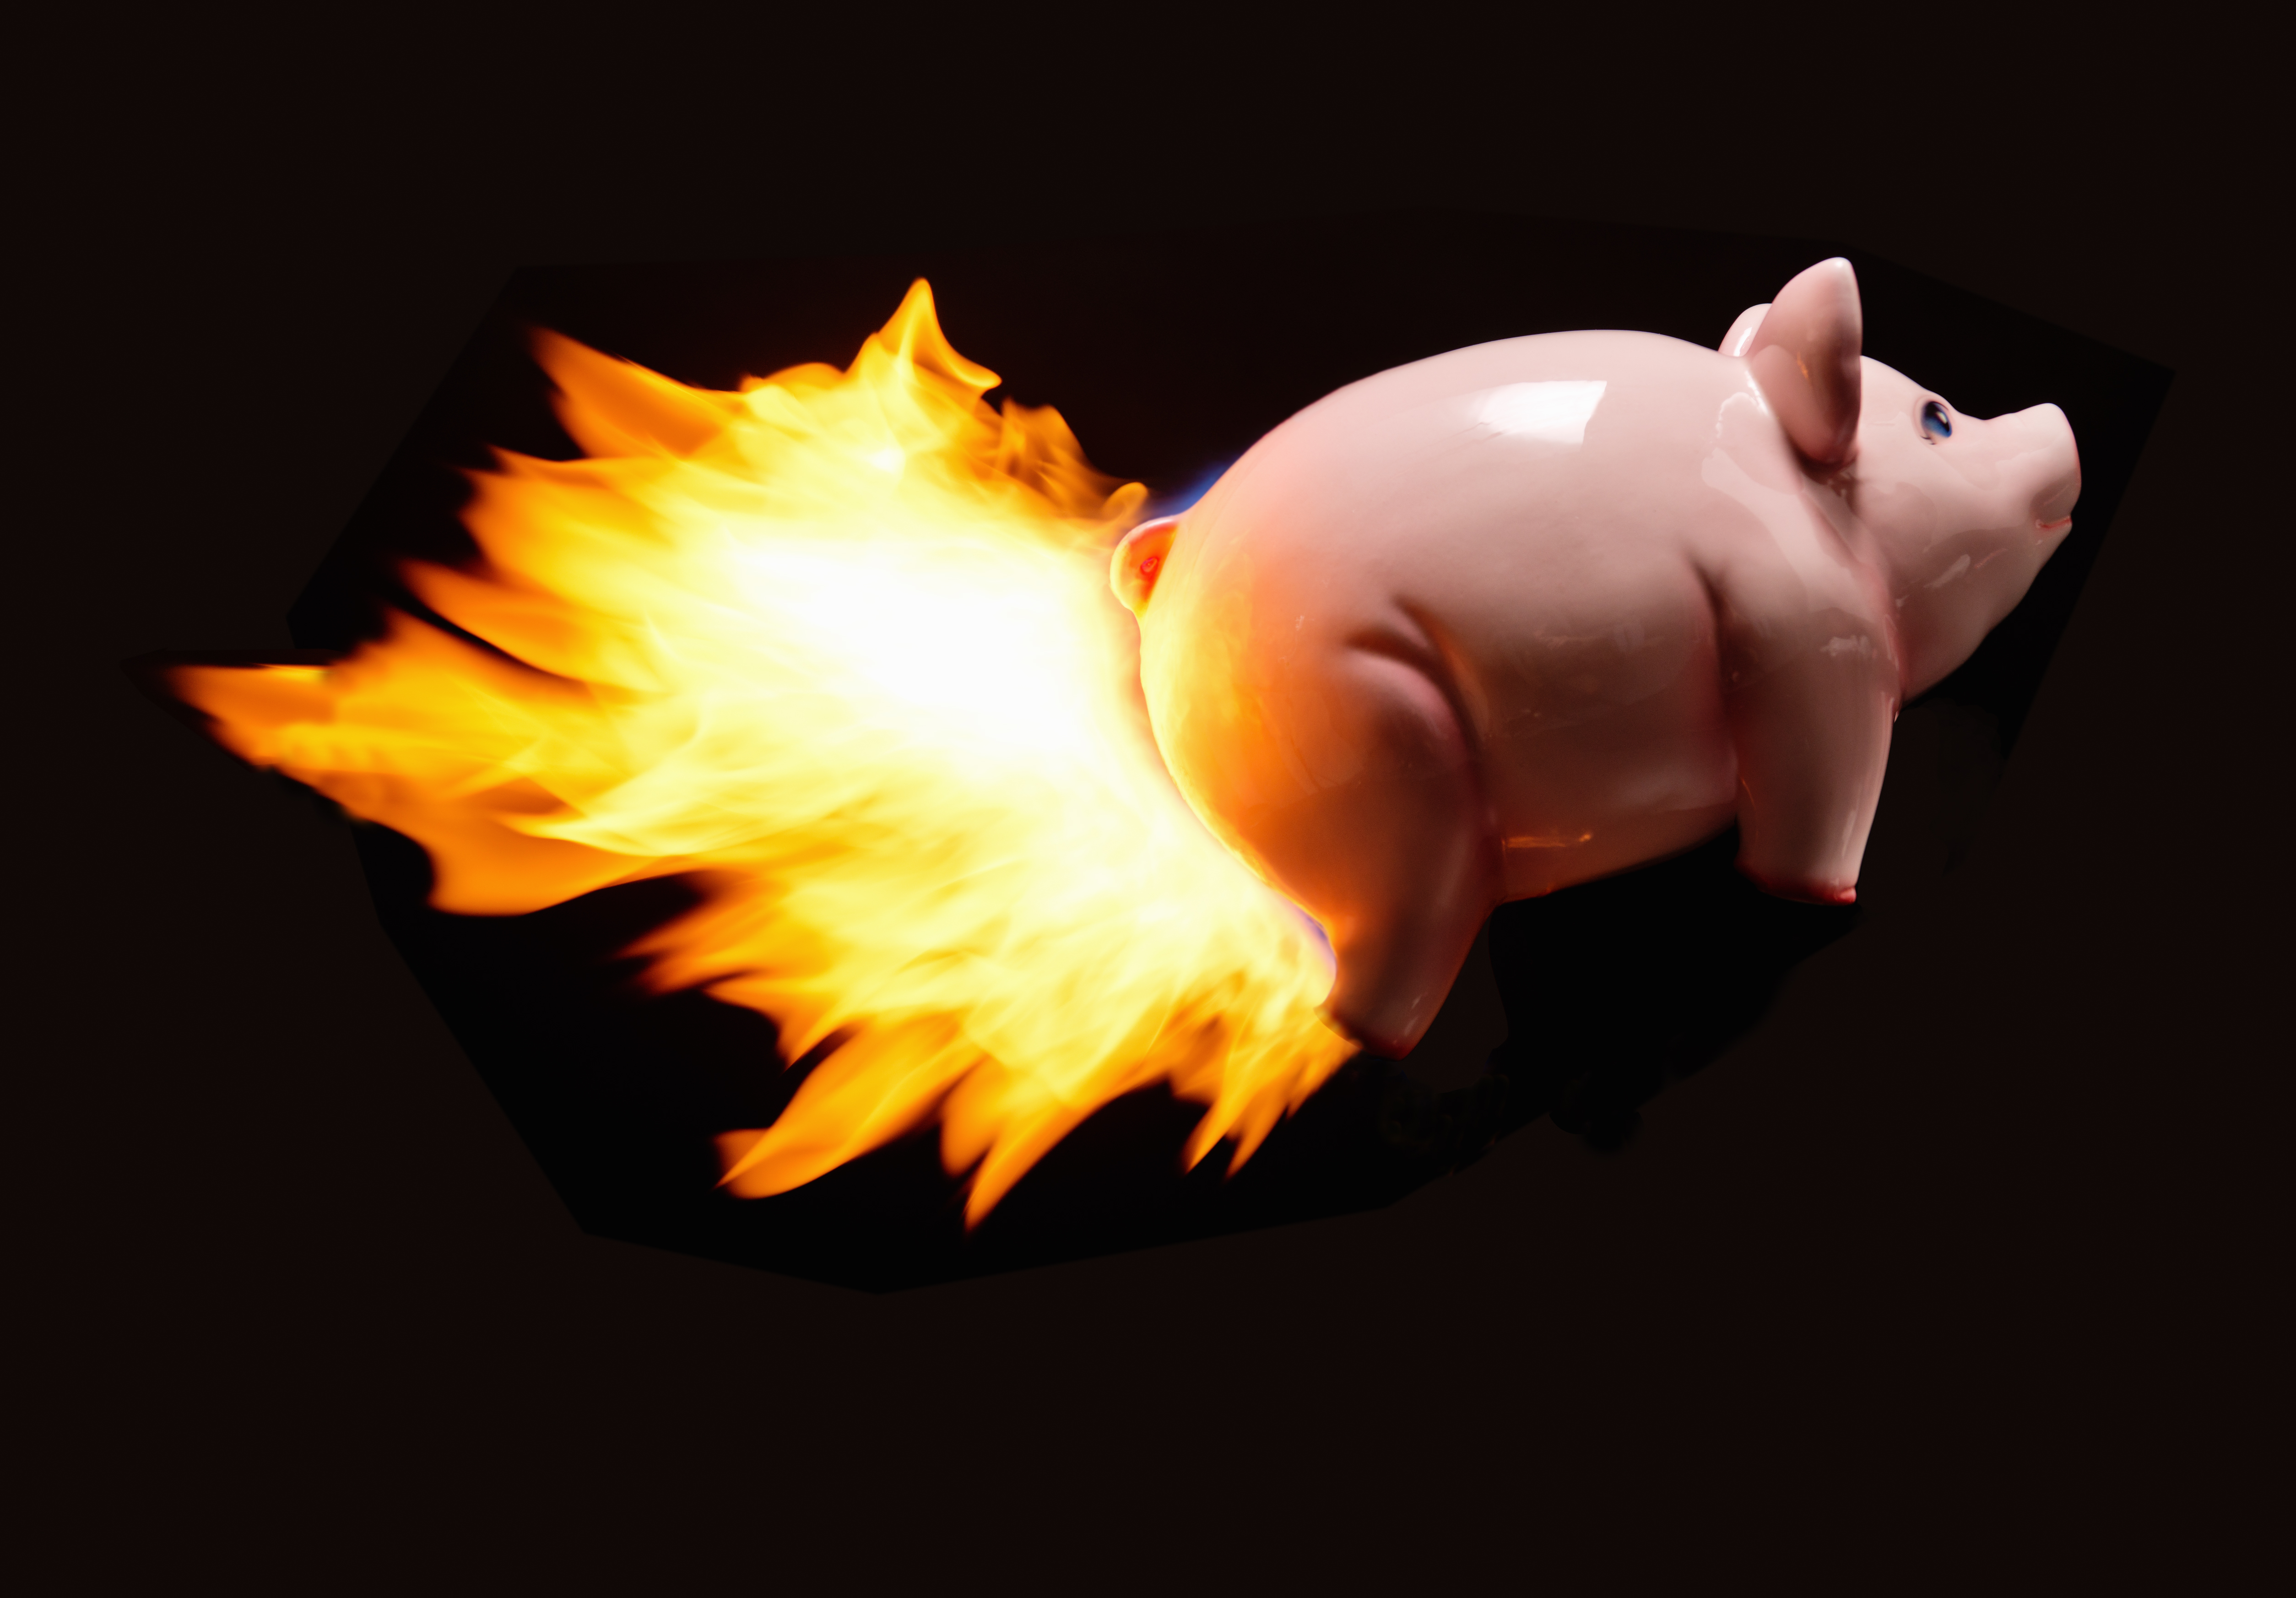 Flying piggy bank on fire